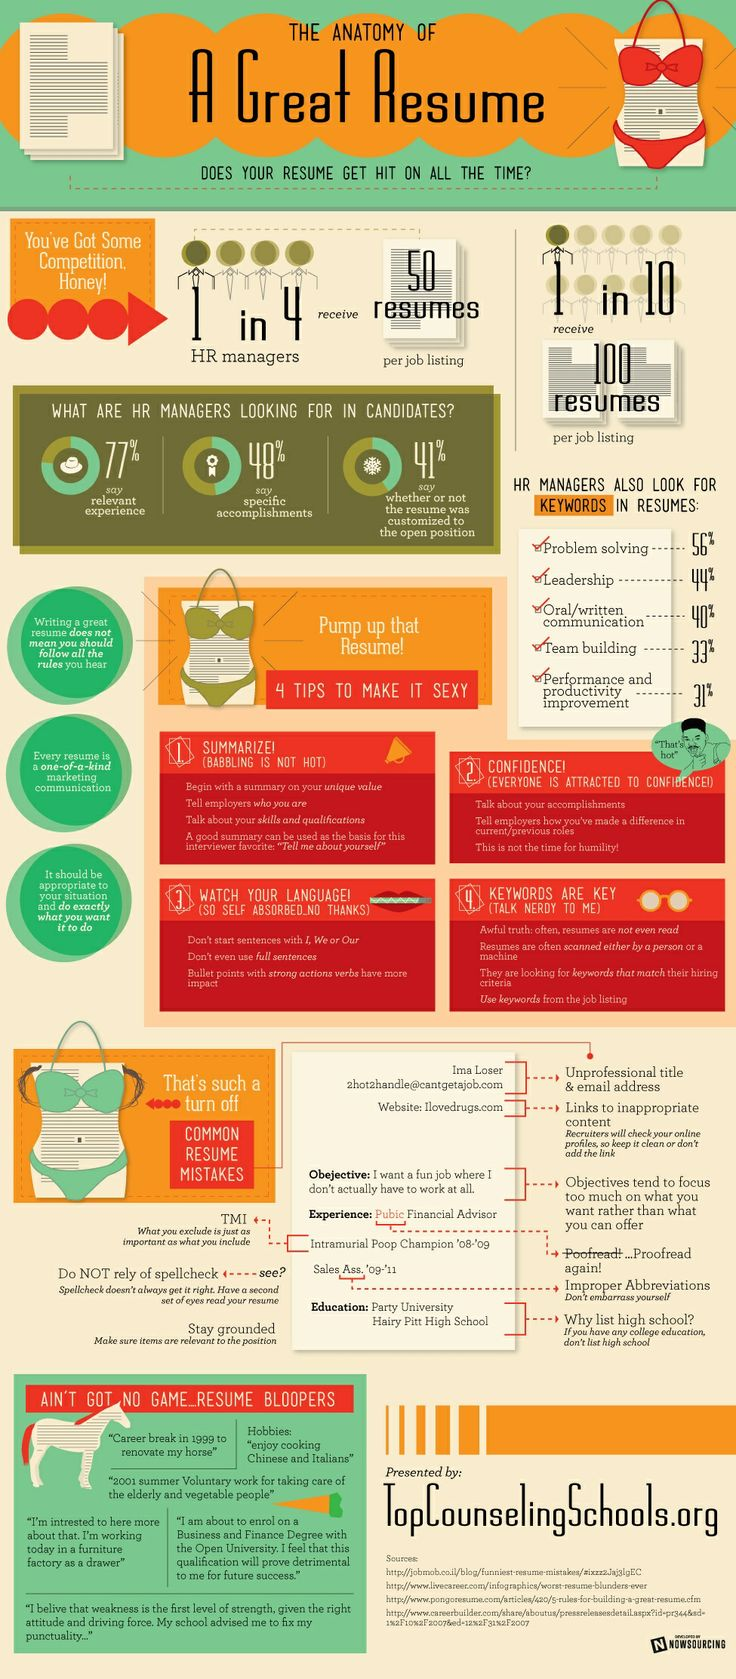 The Anatomy Of A Great Resume